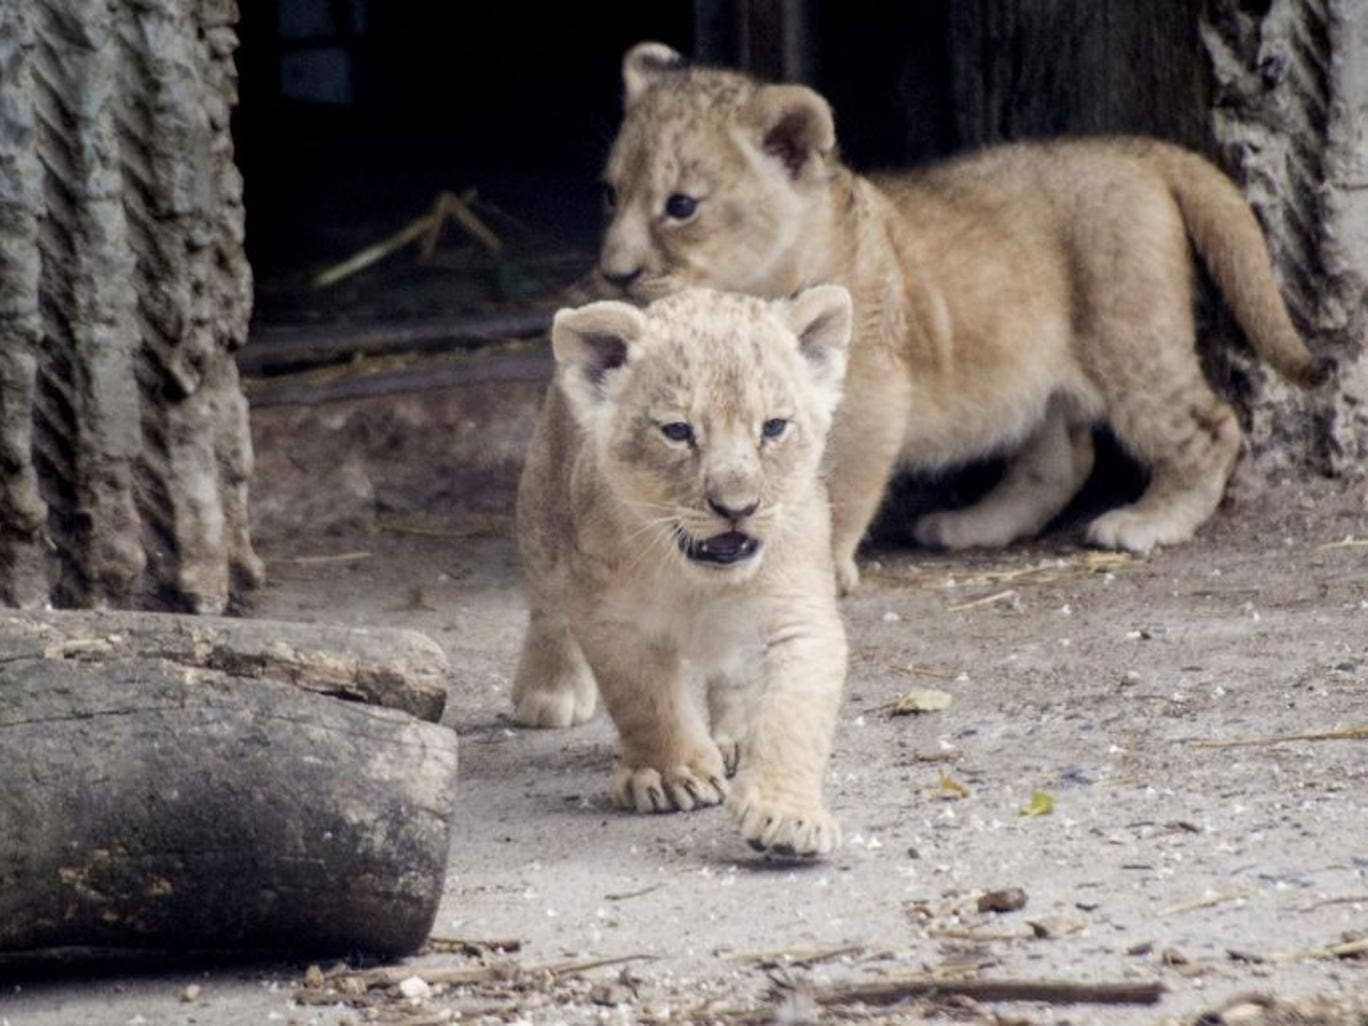 A file photo dated 17 July 2013 shows new lion cubs entering the lions enclosure for the first time. Copenhagen Zoo is once again in the world news after it was reported on 25 March 2014, that the zoo put down four healthy lions. It sparked a world wide o